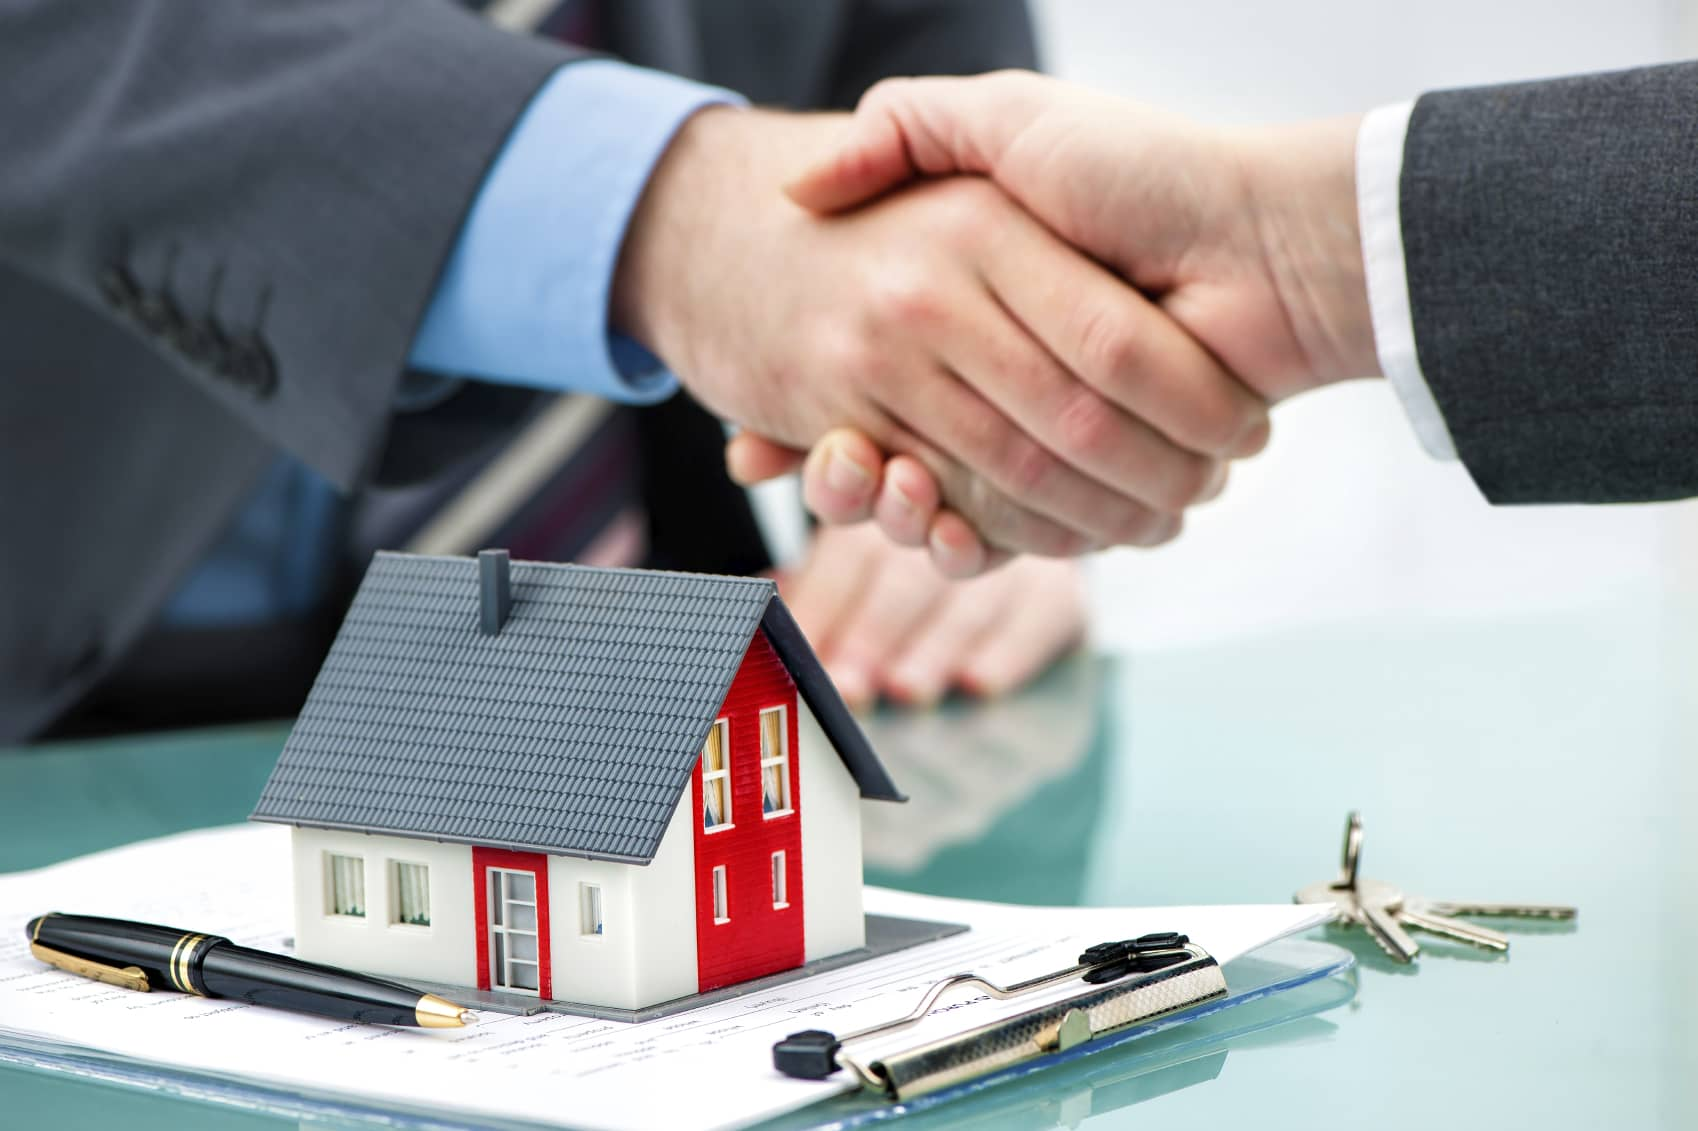 Have You Thought of Choosing a Mortgage Broker?